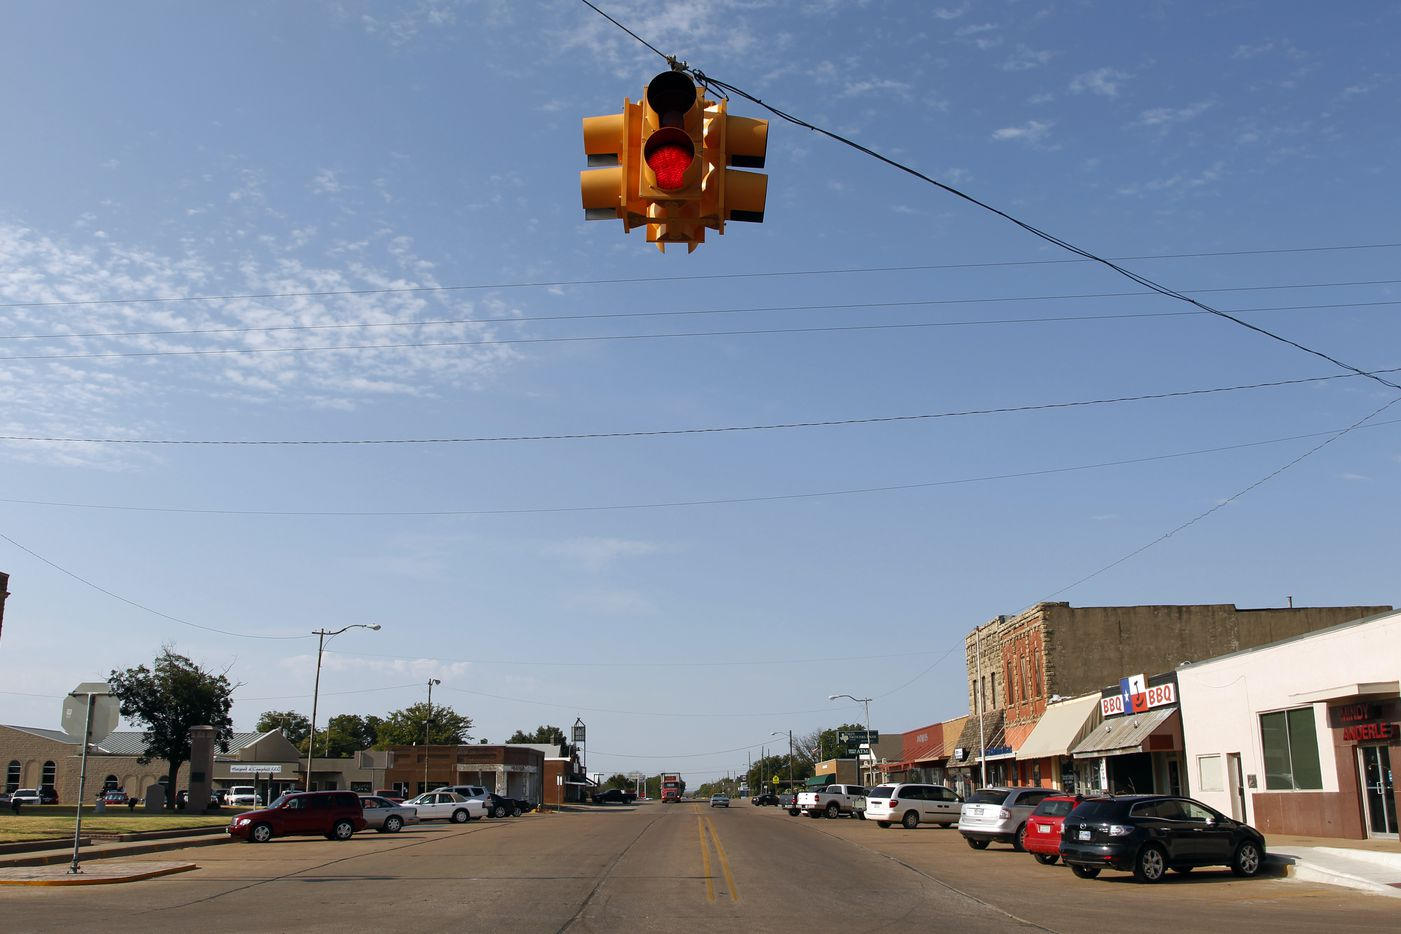 Looking down Center Street in downtown Archer City, Texas, a one traffic-light town.